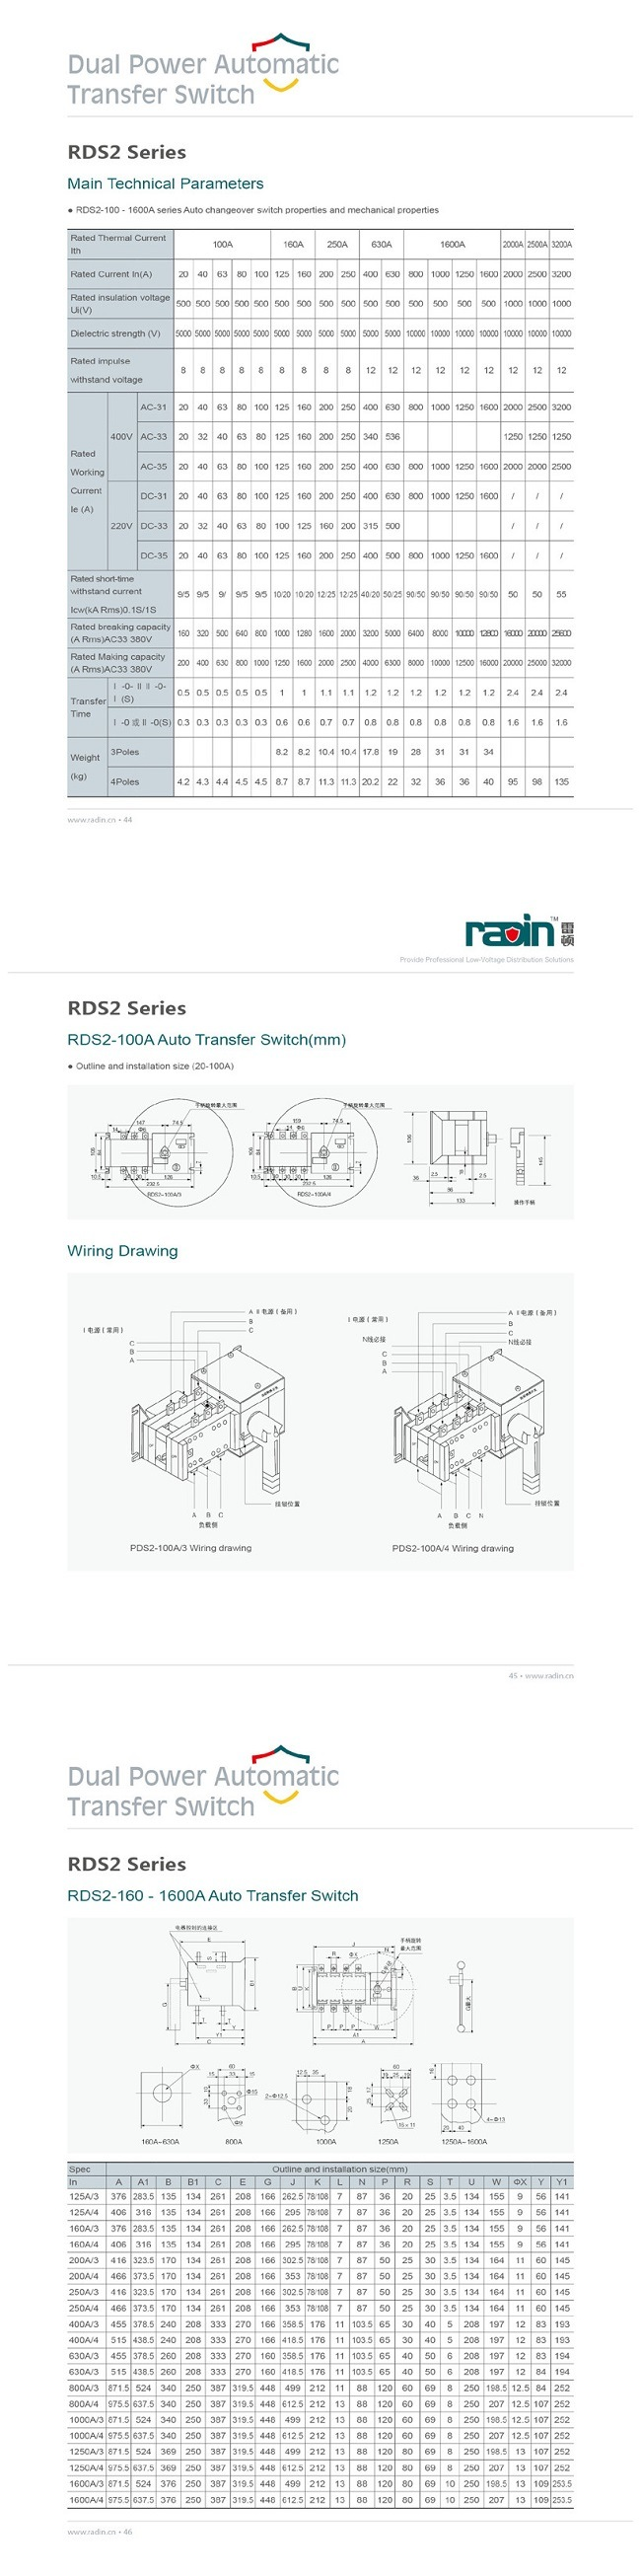 Auto Manual Switch Wiring Diagrams Salzer Toggle Switches Diagram Generator Switchgear Ats Panel For About New Features